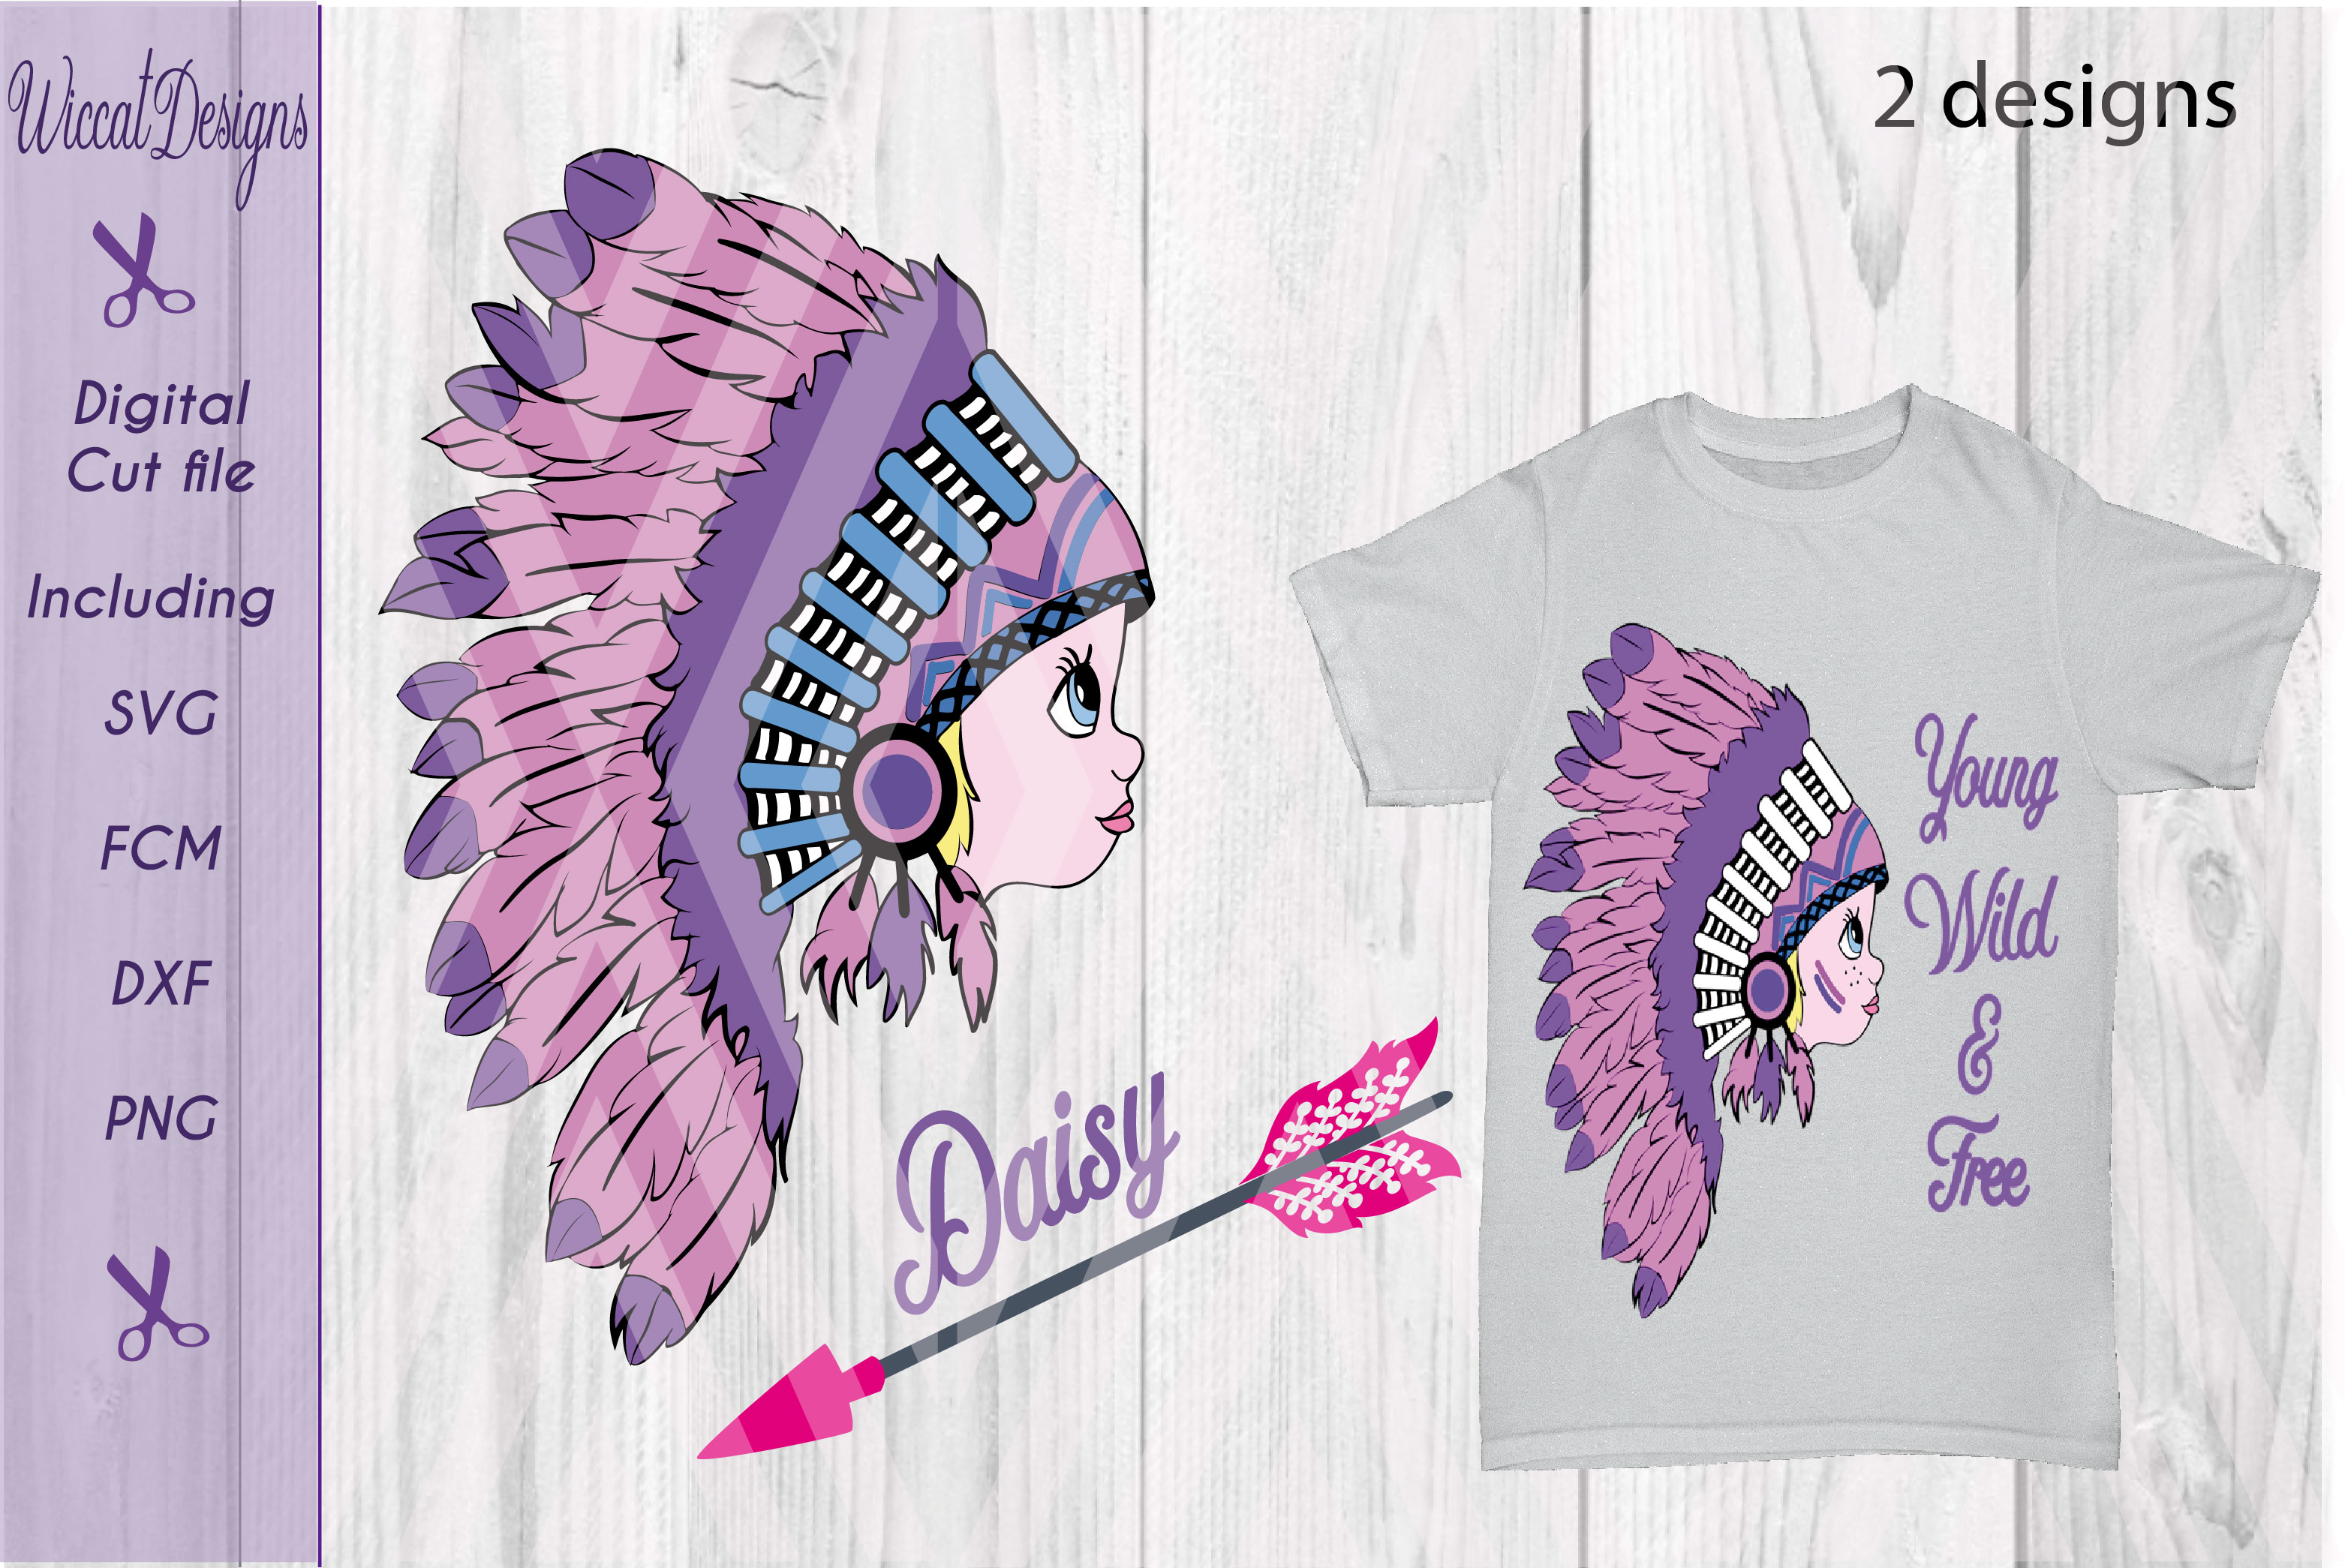 Indian Girl svg, Young Free svg, girls T shirt svg cut file example image 3